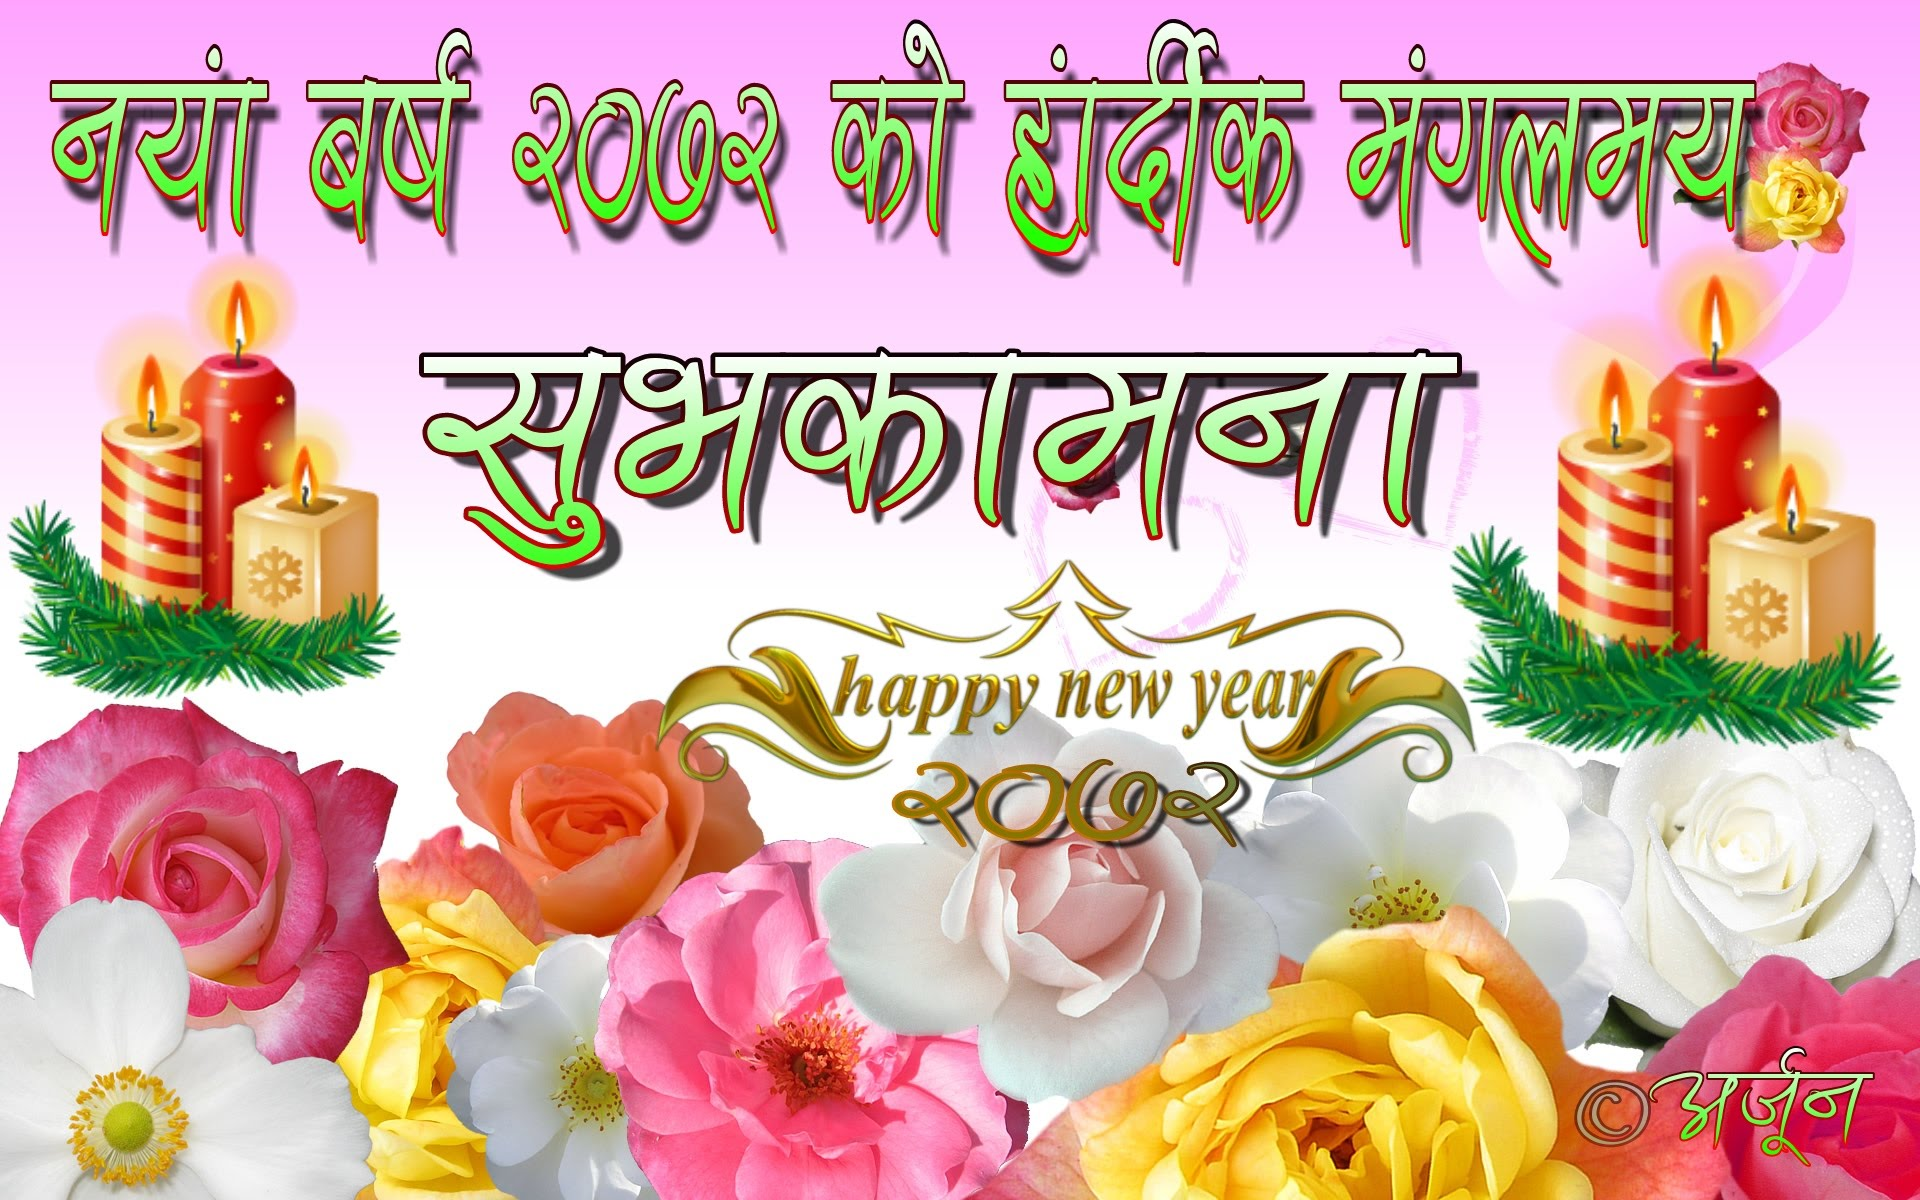 Pink Rose clipart happy new year YouTube new you magar wish